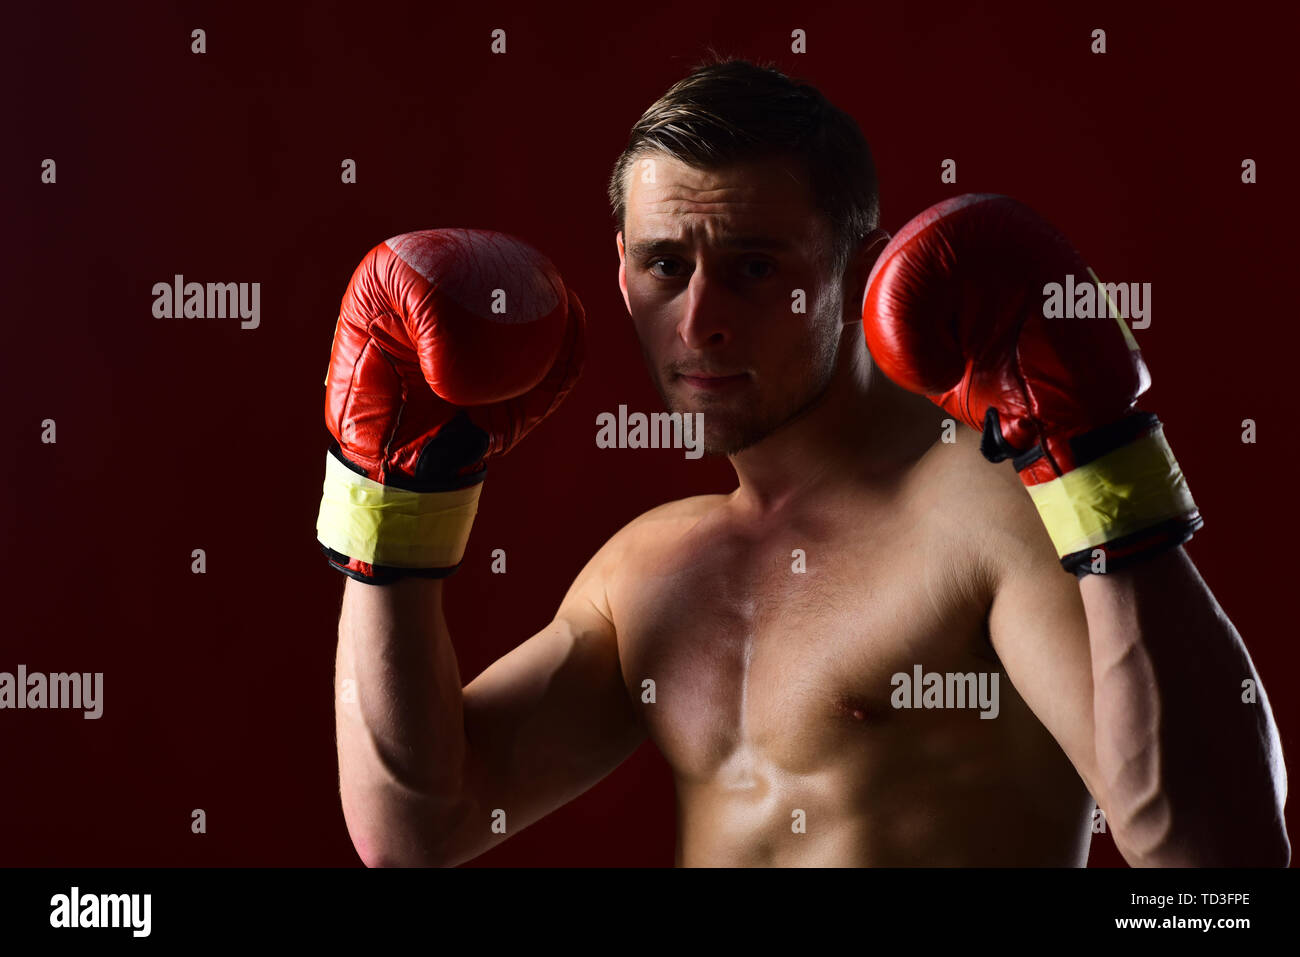 boxer training in boxing gloves. boxer. man boxer with muscular fit body. confident boxer punching at sport workout. man boxing - Stock Image